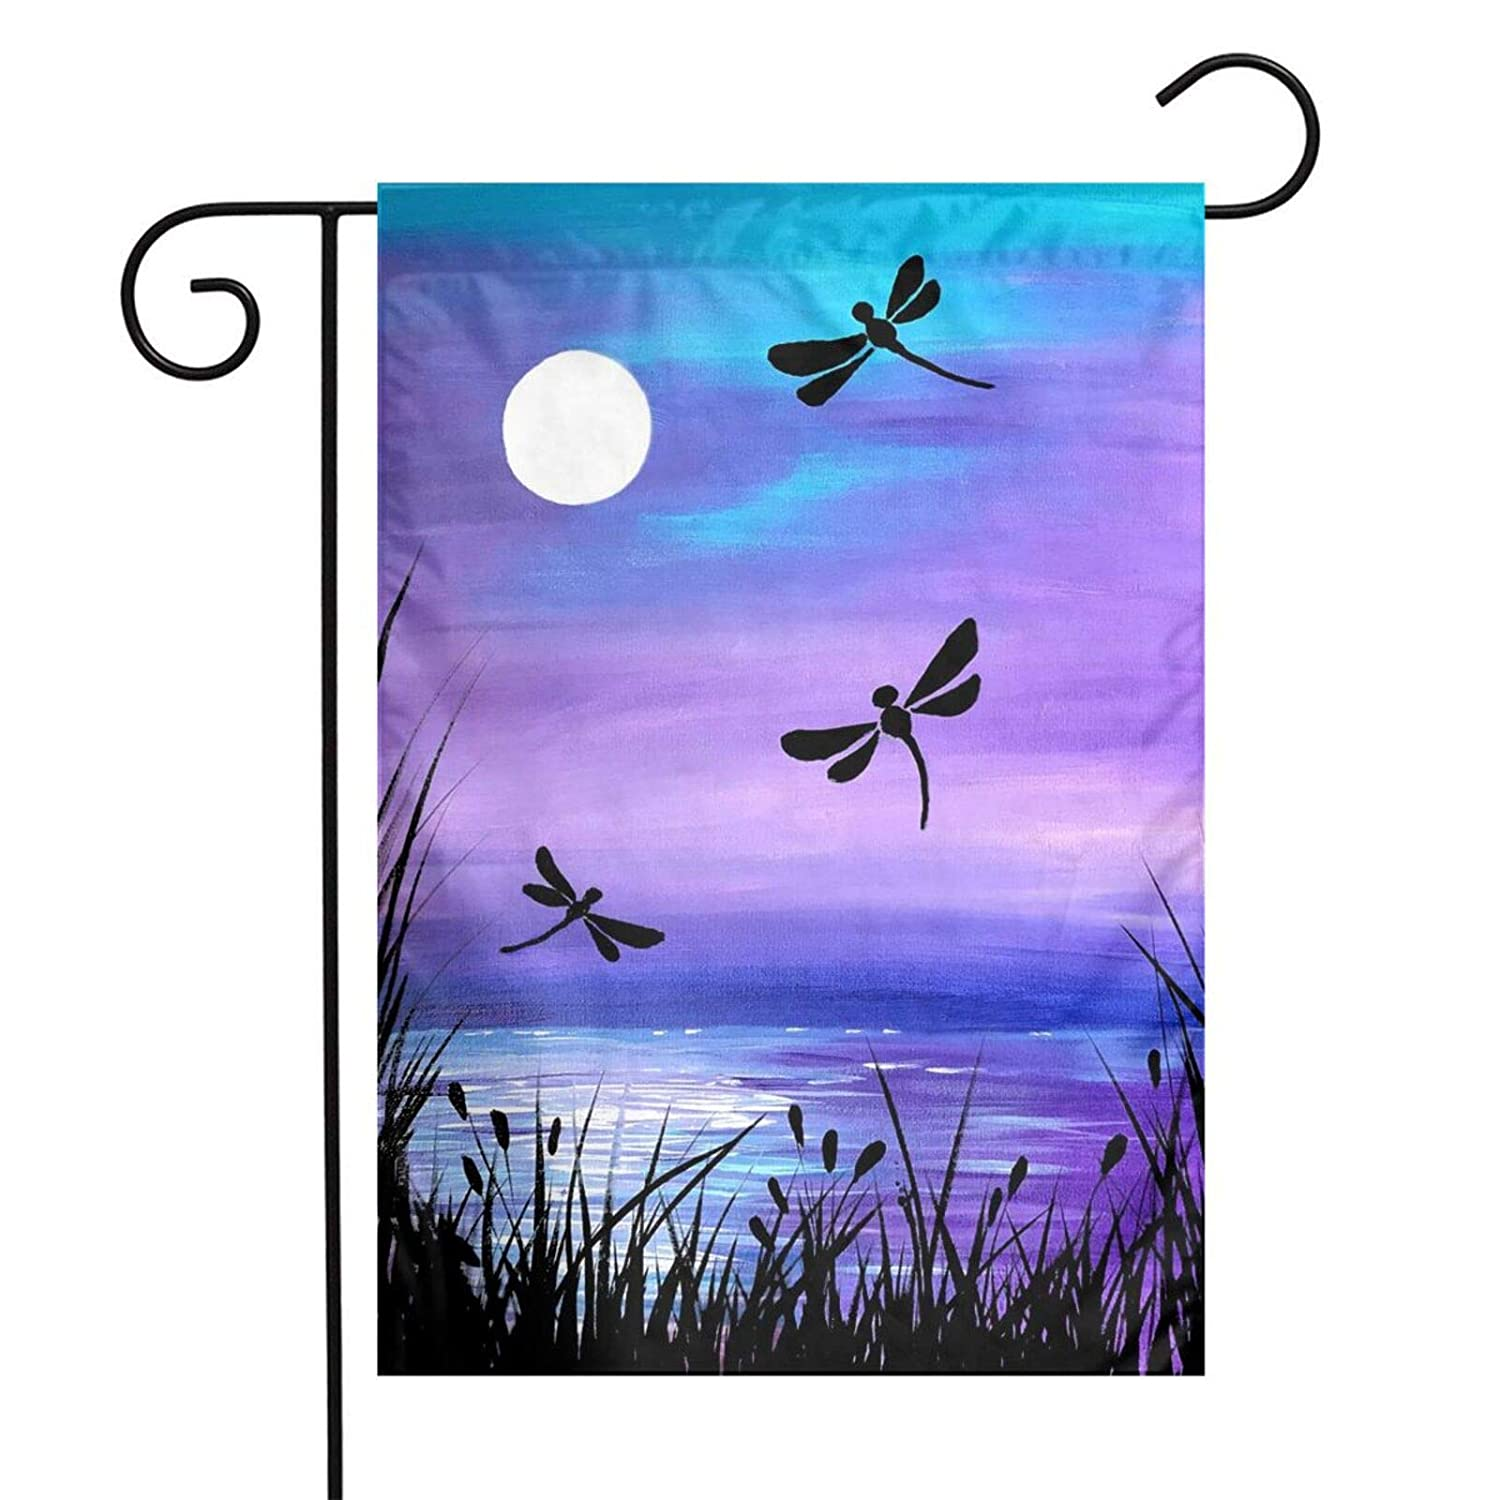 Lake Dragonfly Moon Outdoor Garden Welcome Flag, Double Sided Vertical Garden Yard Flag Banner for Lawn House Outside Decor 12x18inch